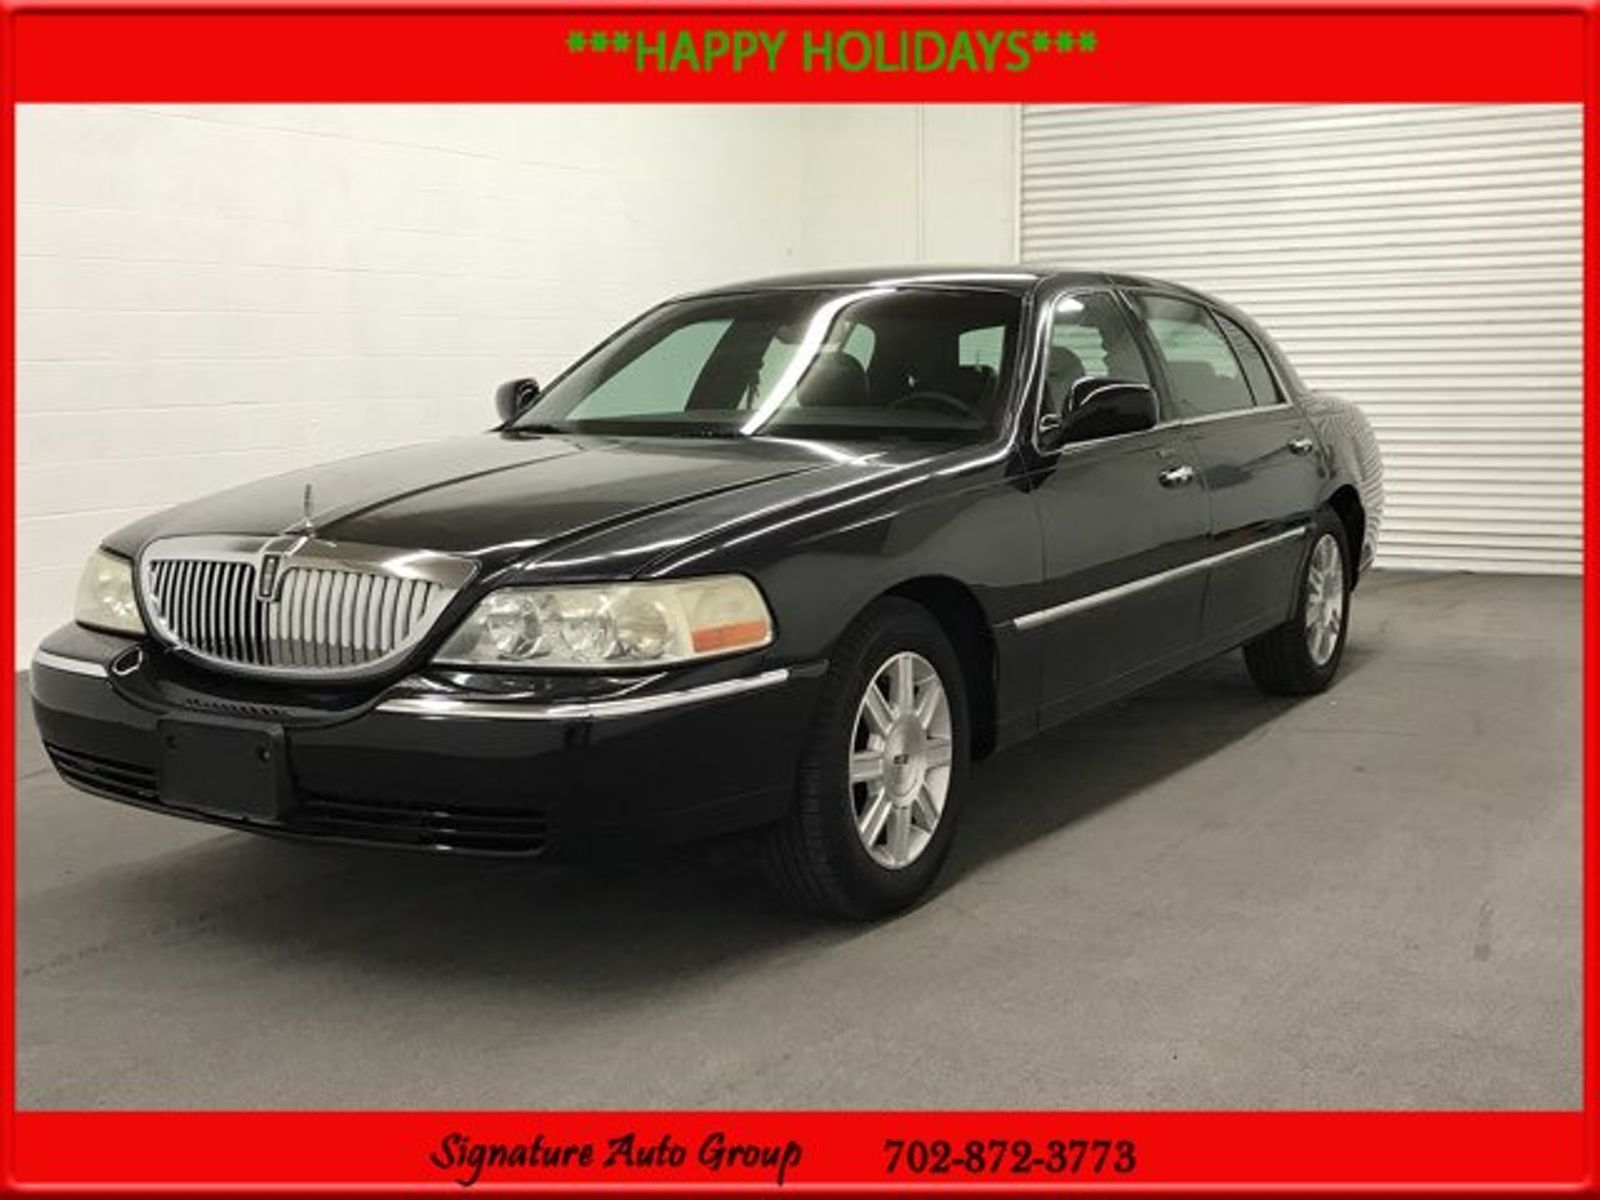 2008 black executive l used lincoln town car for sale in las vegas nevada. Black Bedroom Furniture Sets. Home Design Ideas